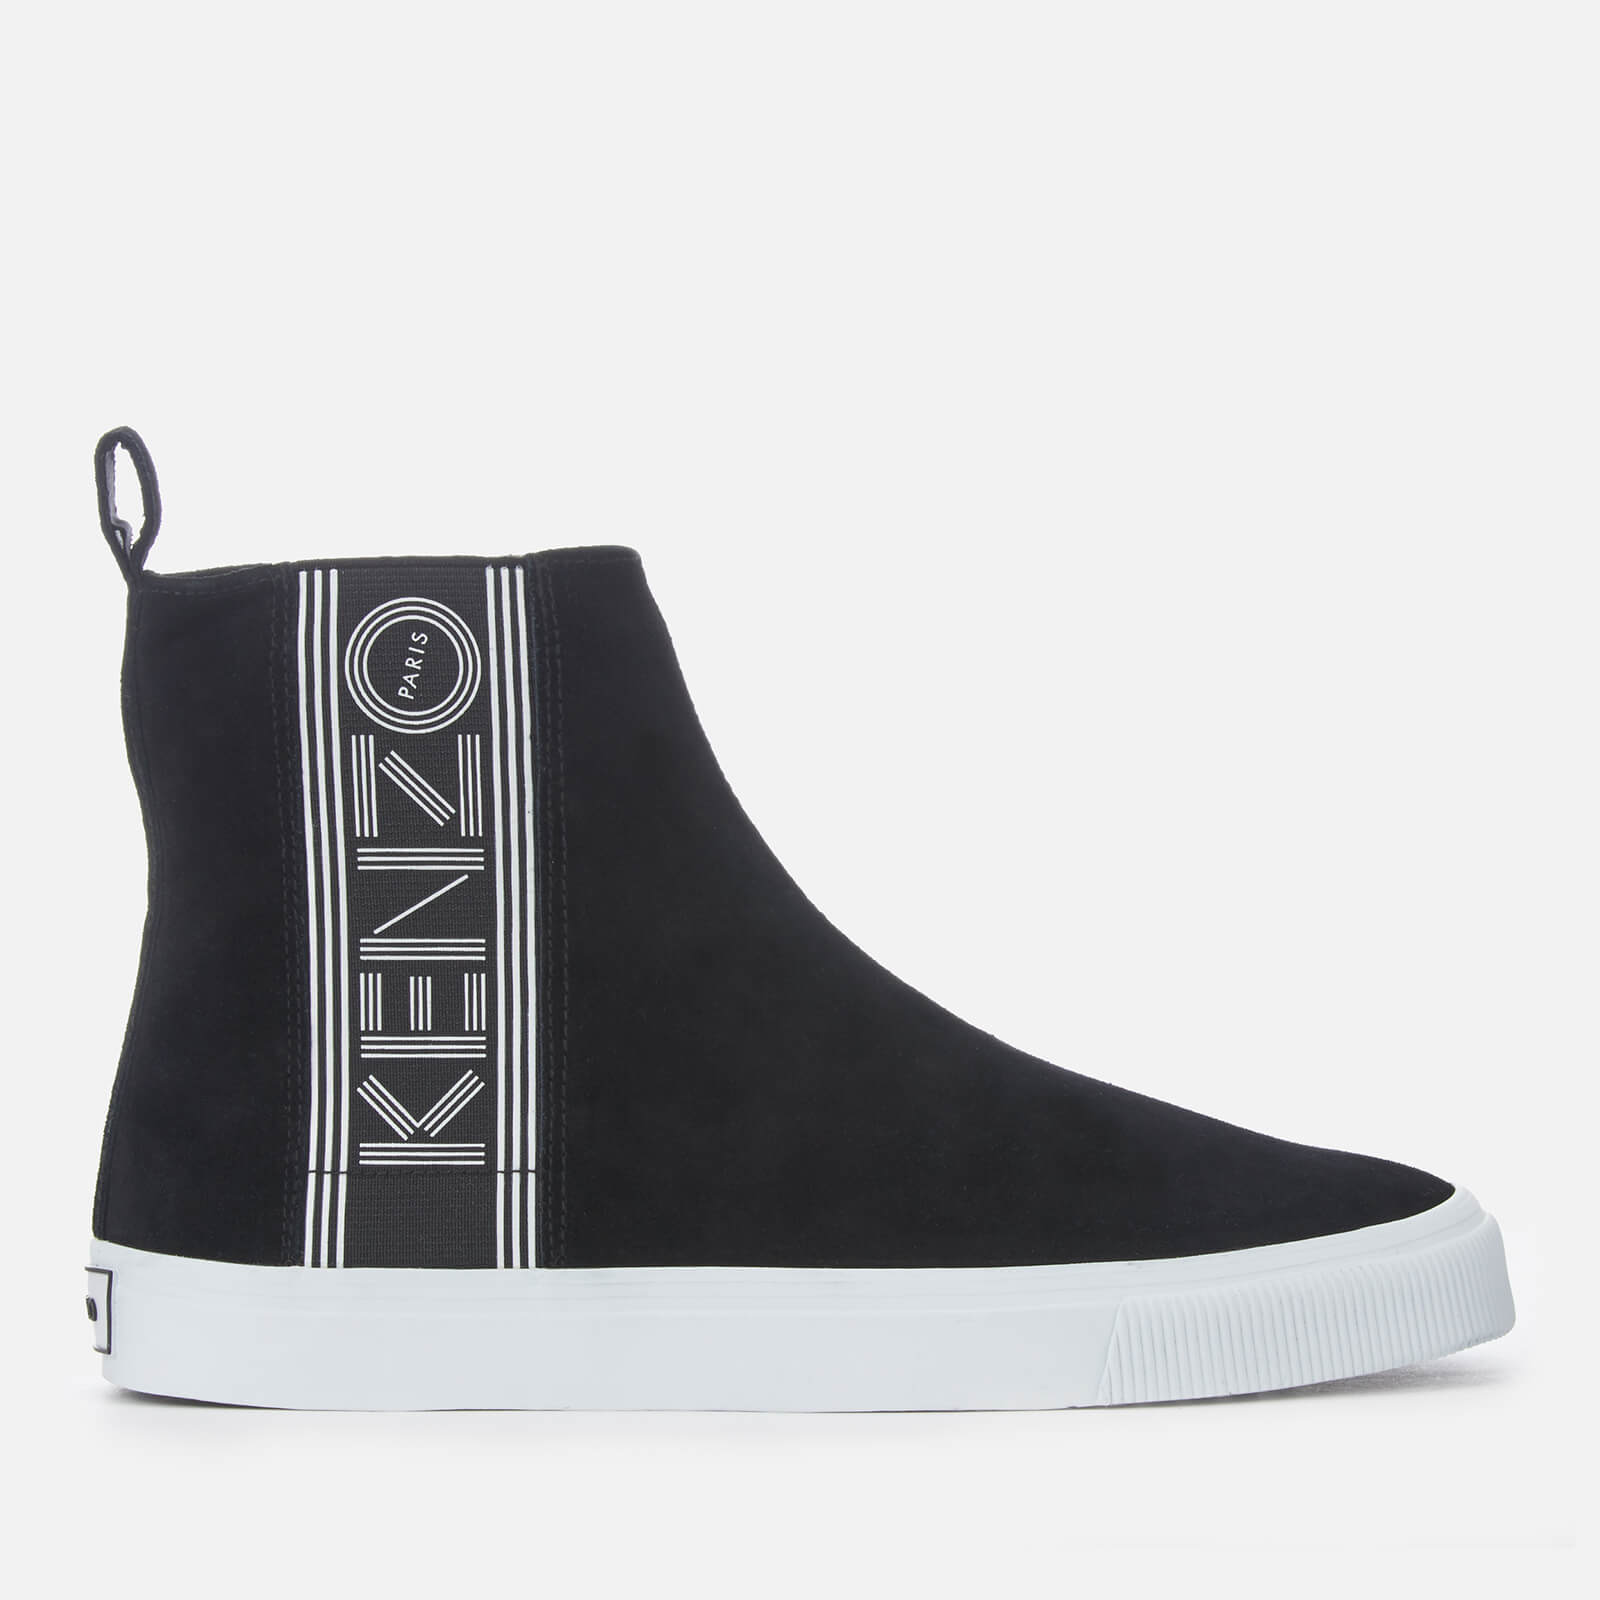 688a5c7c8e KENZO Men's Kapri Suede High Top Trainers - Black